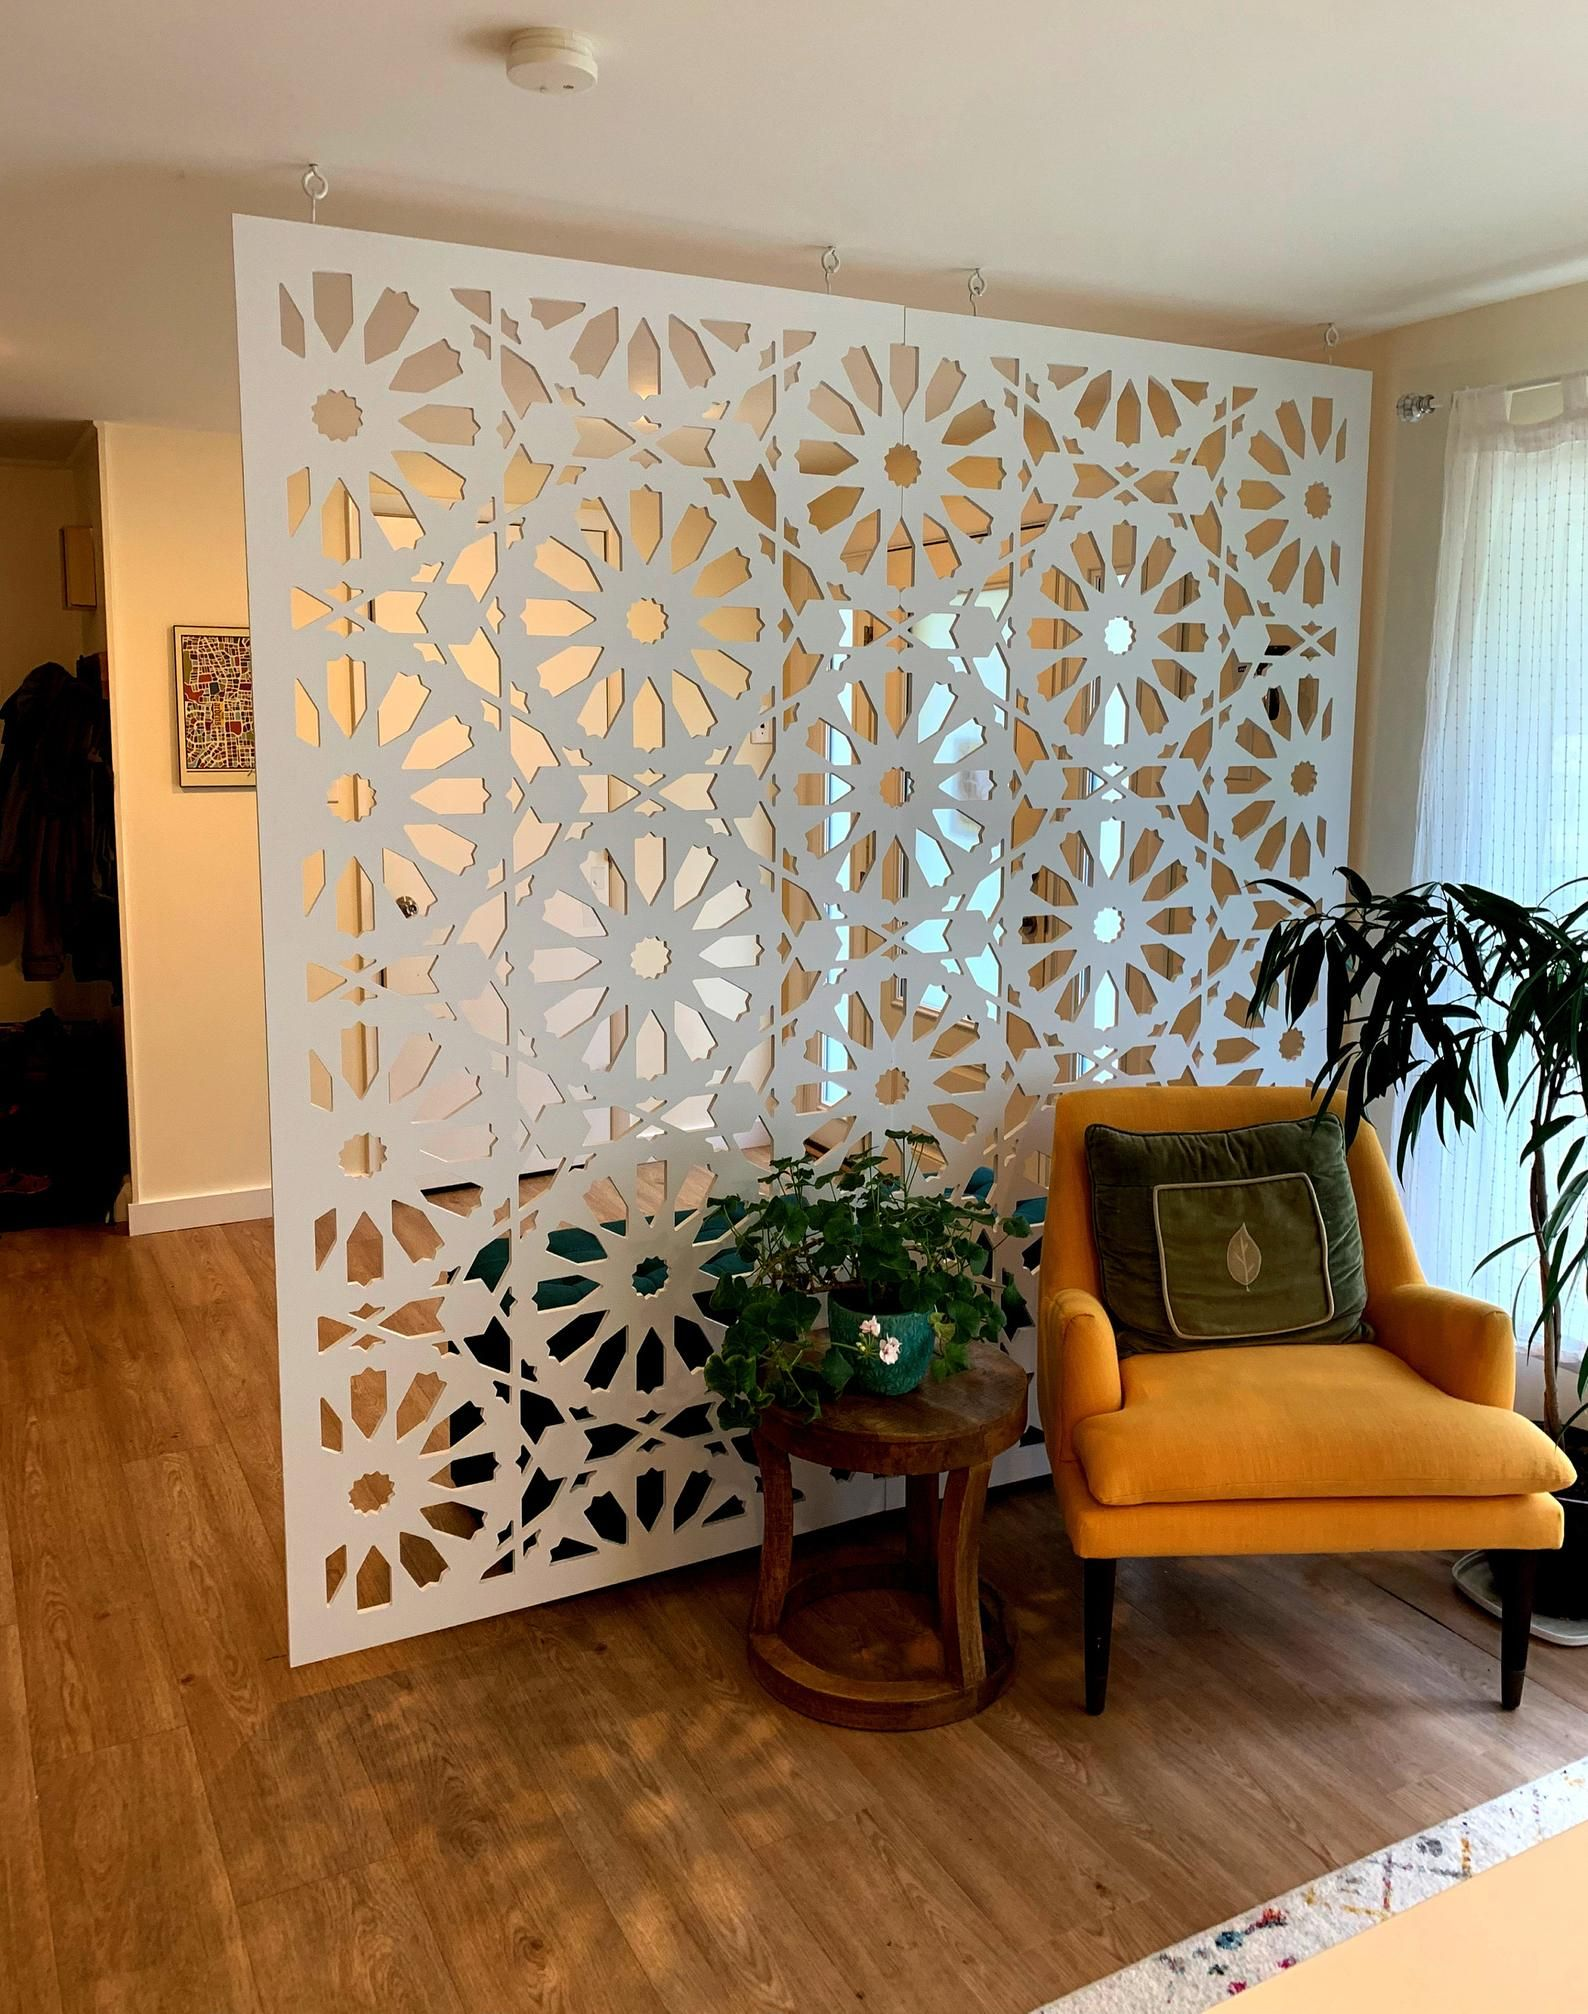 156e754beeea8d7f32aa022236fd5452 - Room Partition For Rent In Discovery Gardens